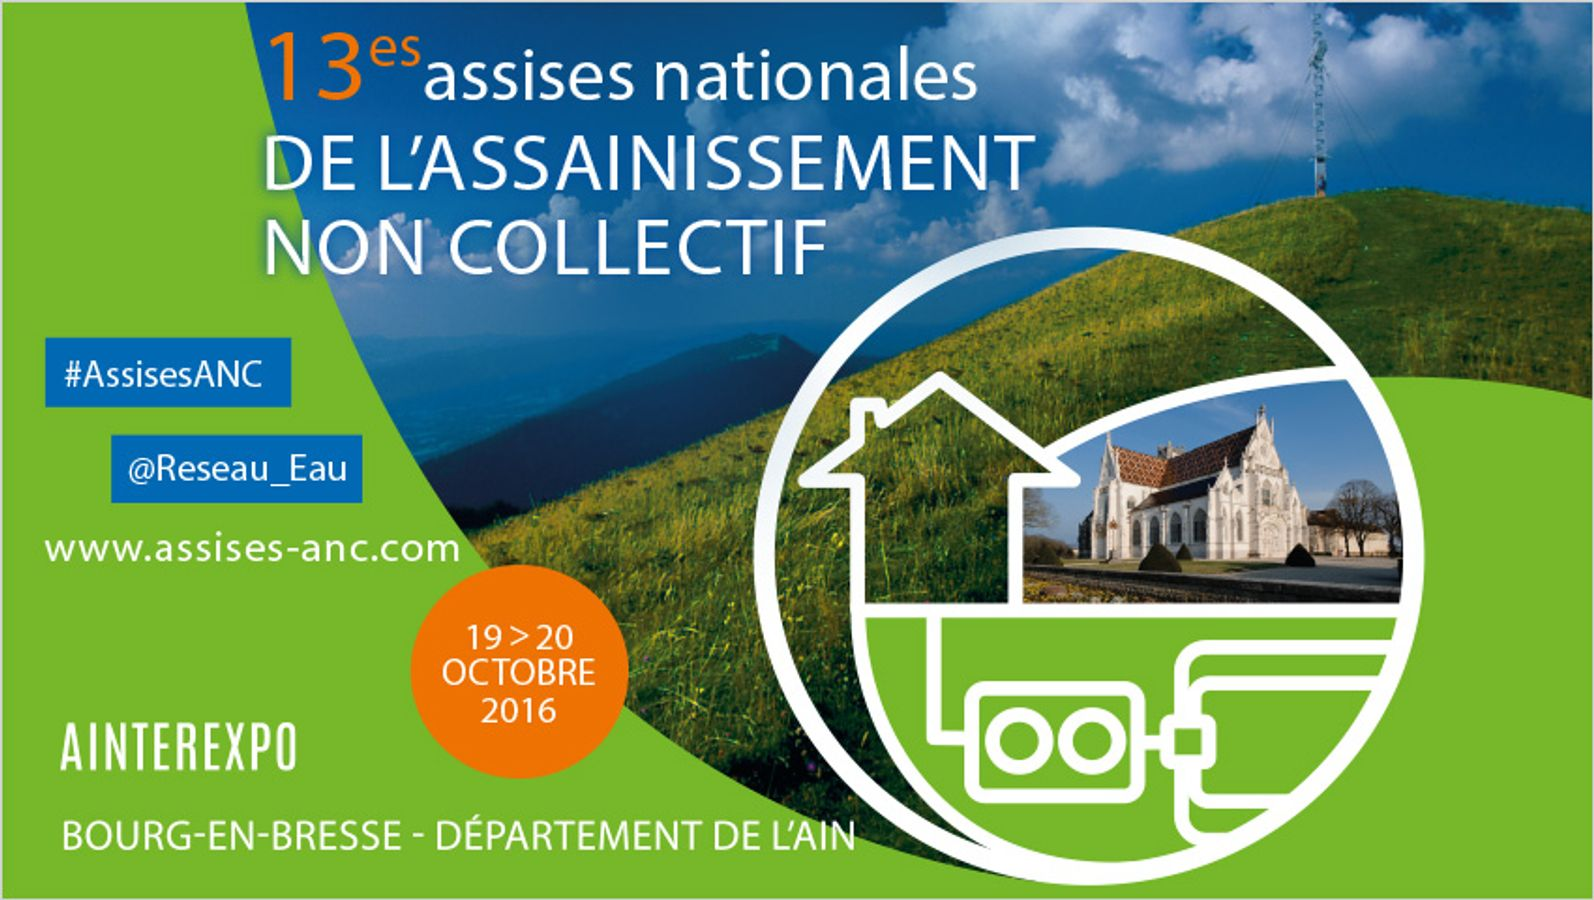 Assises ANC - Supports disponibles - Jour 1